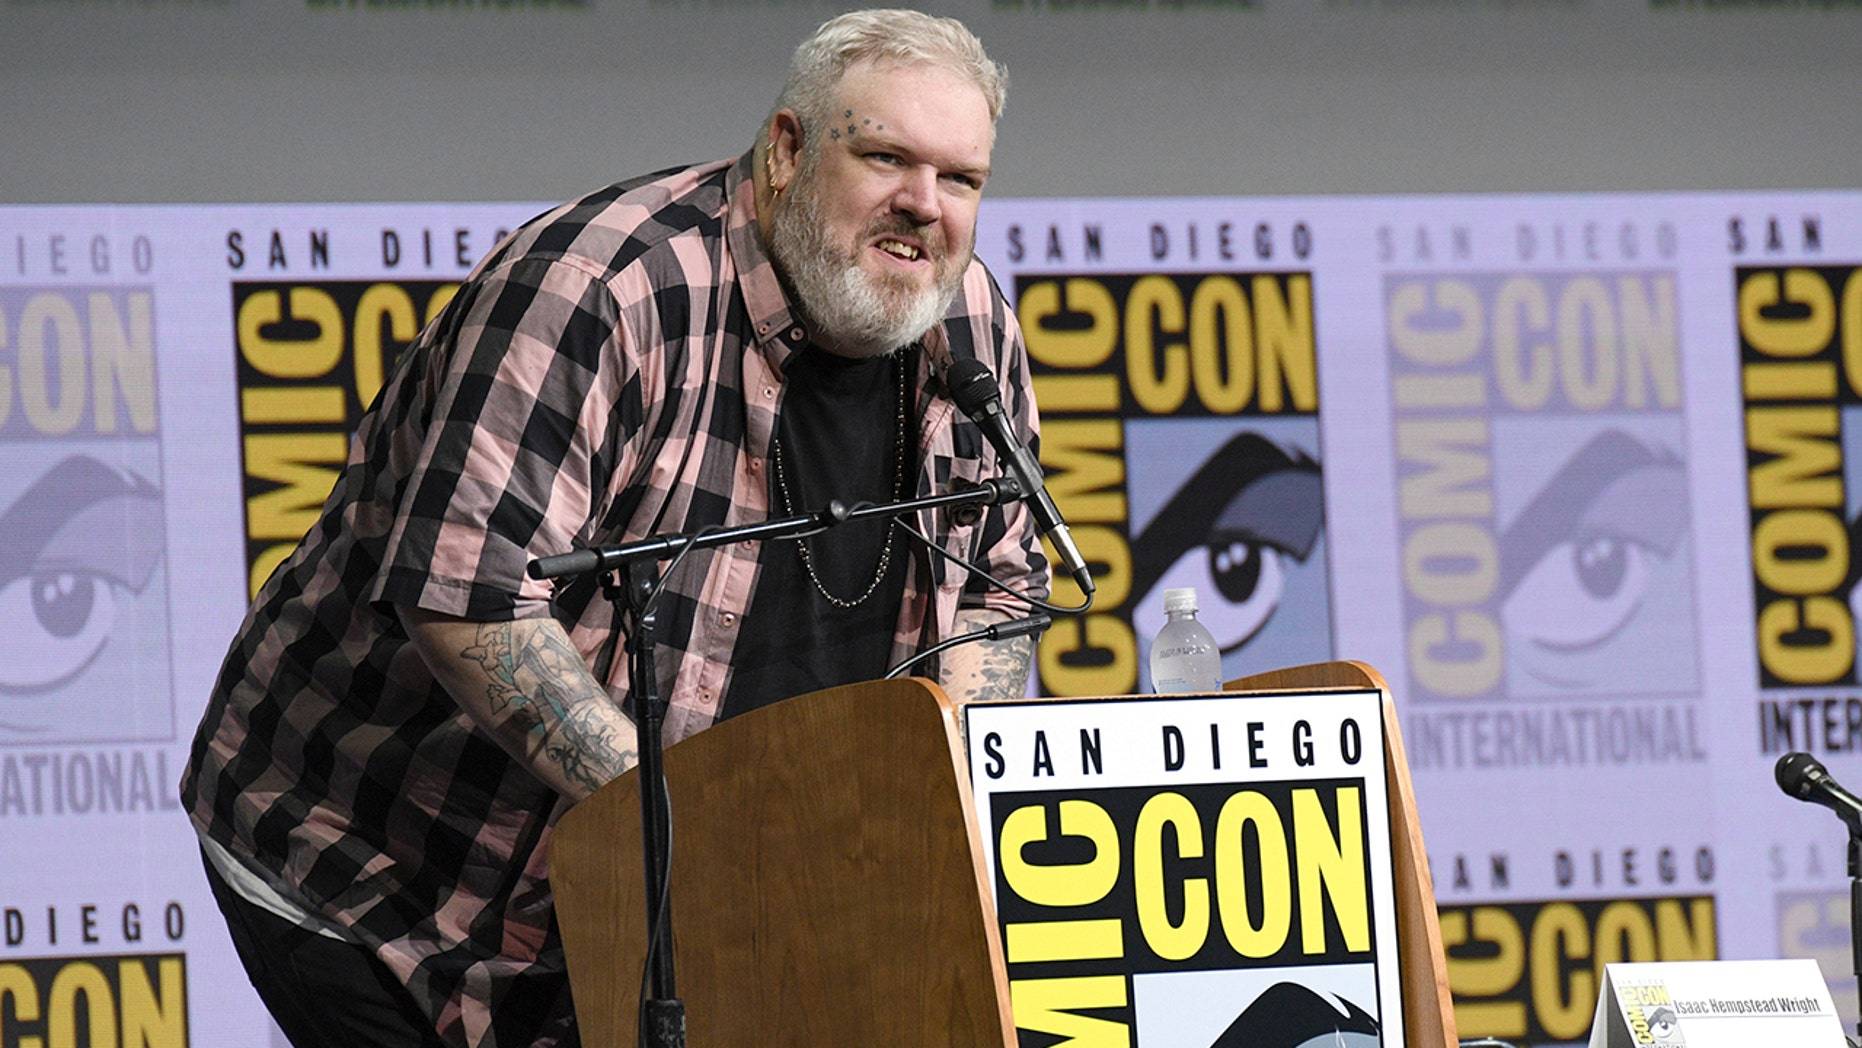 """Moderator Kristian Nairn speaks at the """"Game of Thrones"""" panel on day two of Comic-Con International on Friday, July 21, 2017, in San Diego. (Photo by Al Powers/Invision/AP)"""